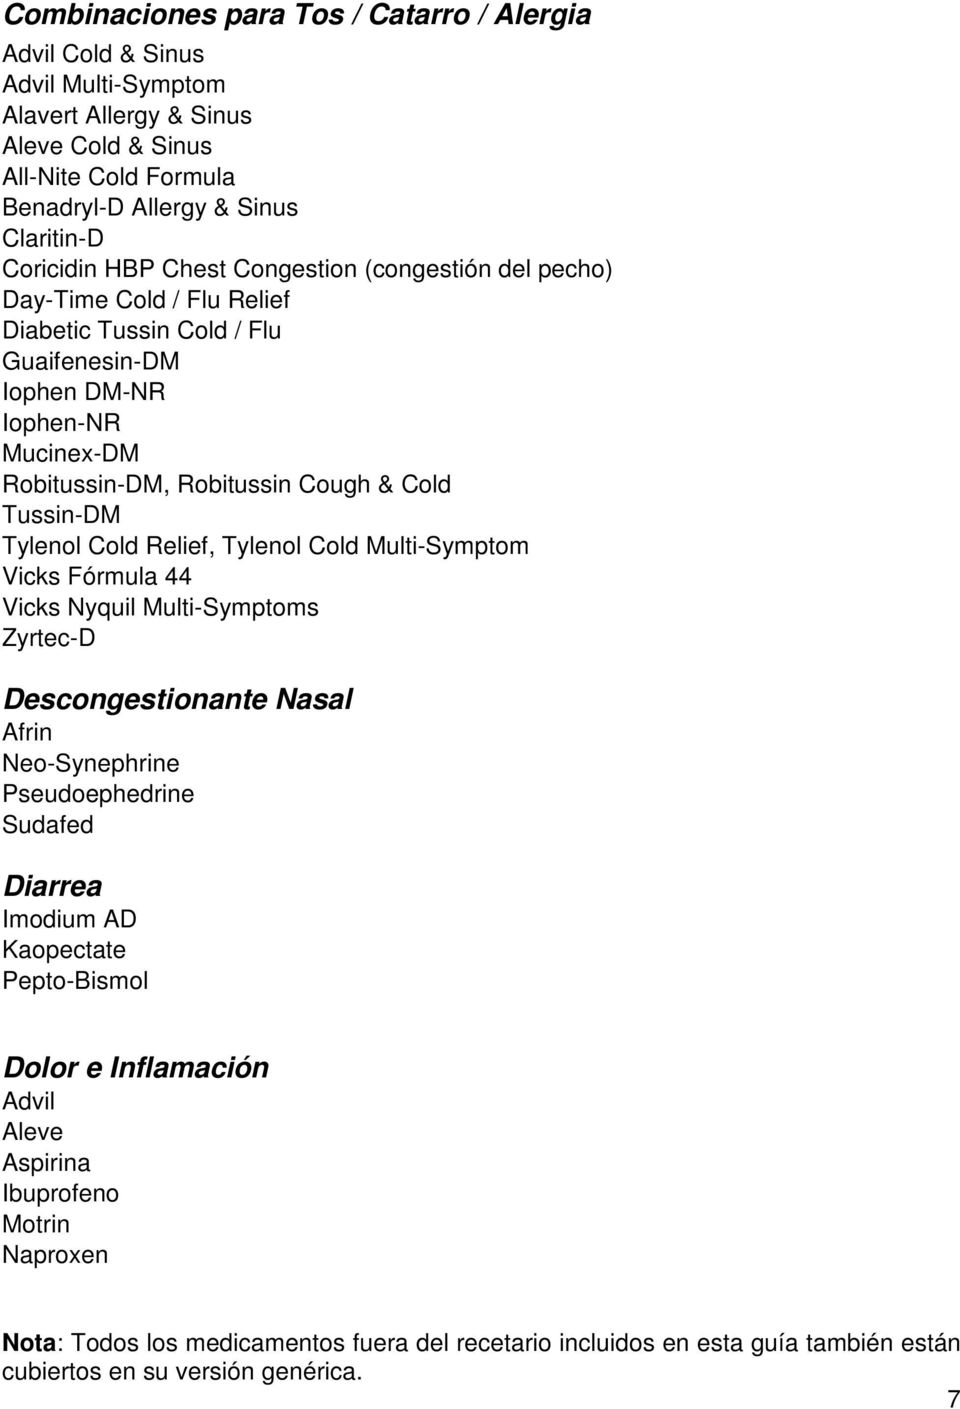 Tylenol Cold Relief, Tylenol Cold Multi-Symptom Vicks Fórmula 44 Vicks Nyquil Multi-Symptoms Zyrtec-D Descongestionante Nasal Afrin Neo-Synephrine Pseudoephedrine Sudafed Diarrea Imodium AD